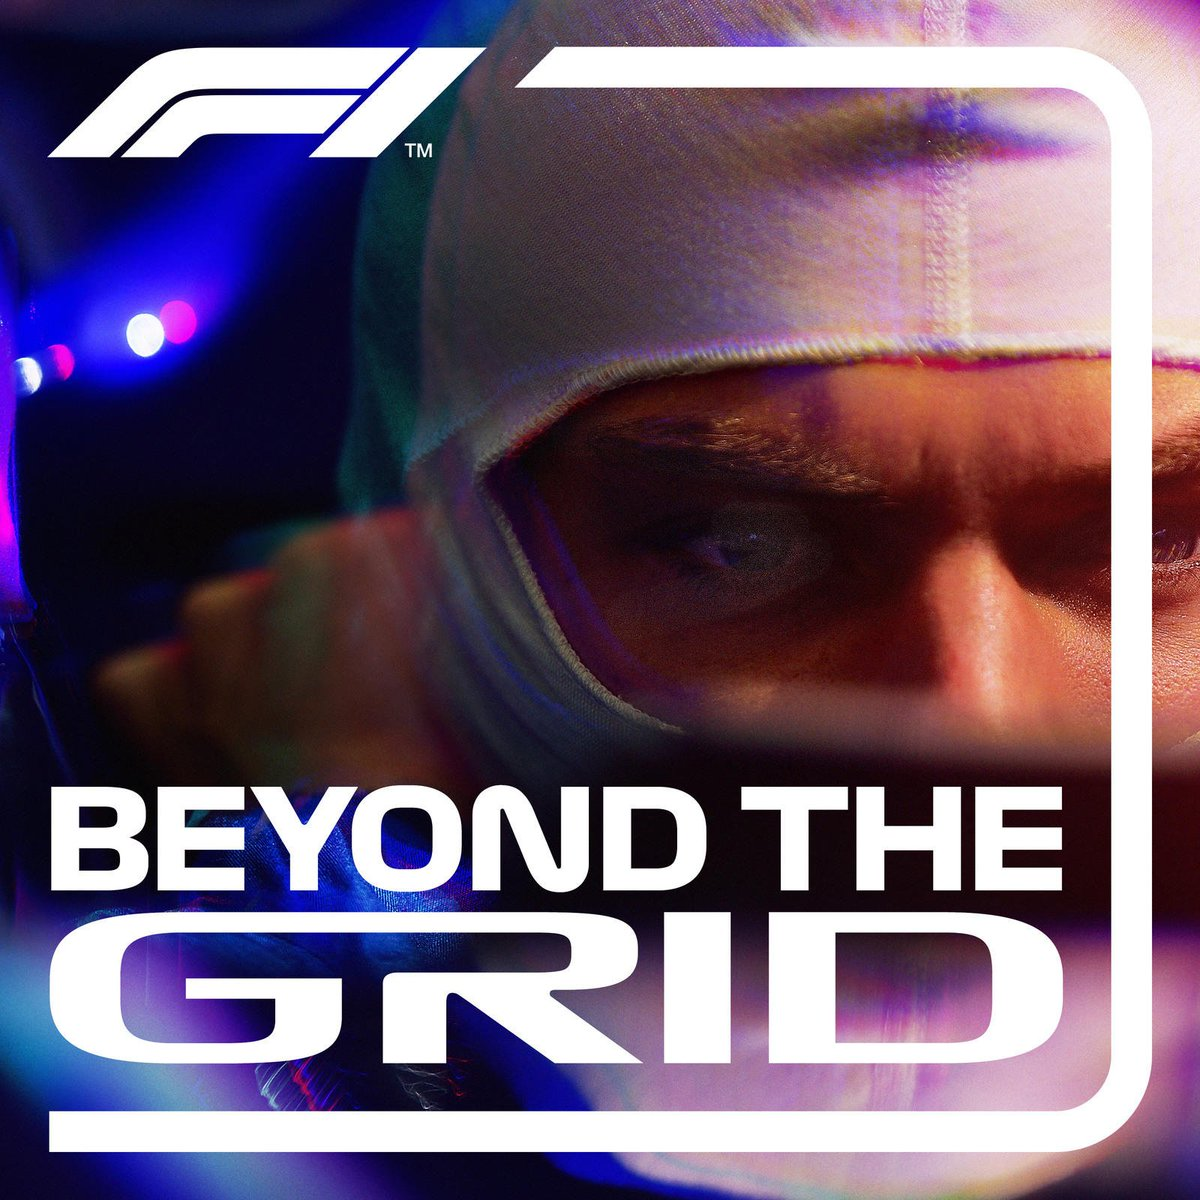 """62: Ralf Schumacher: """"Would I have made it to F1 without Michael? I don't think so"""" #f1BeyondTheGrid  http://podplayer.net/?id=84073077 via @PodcastAddict"""